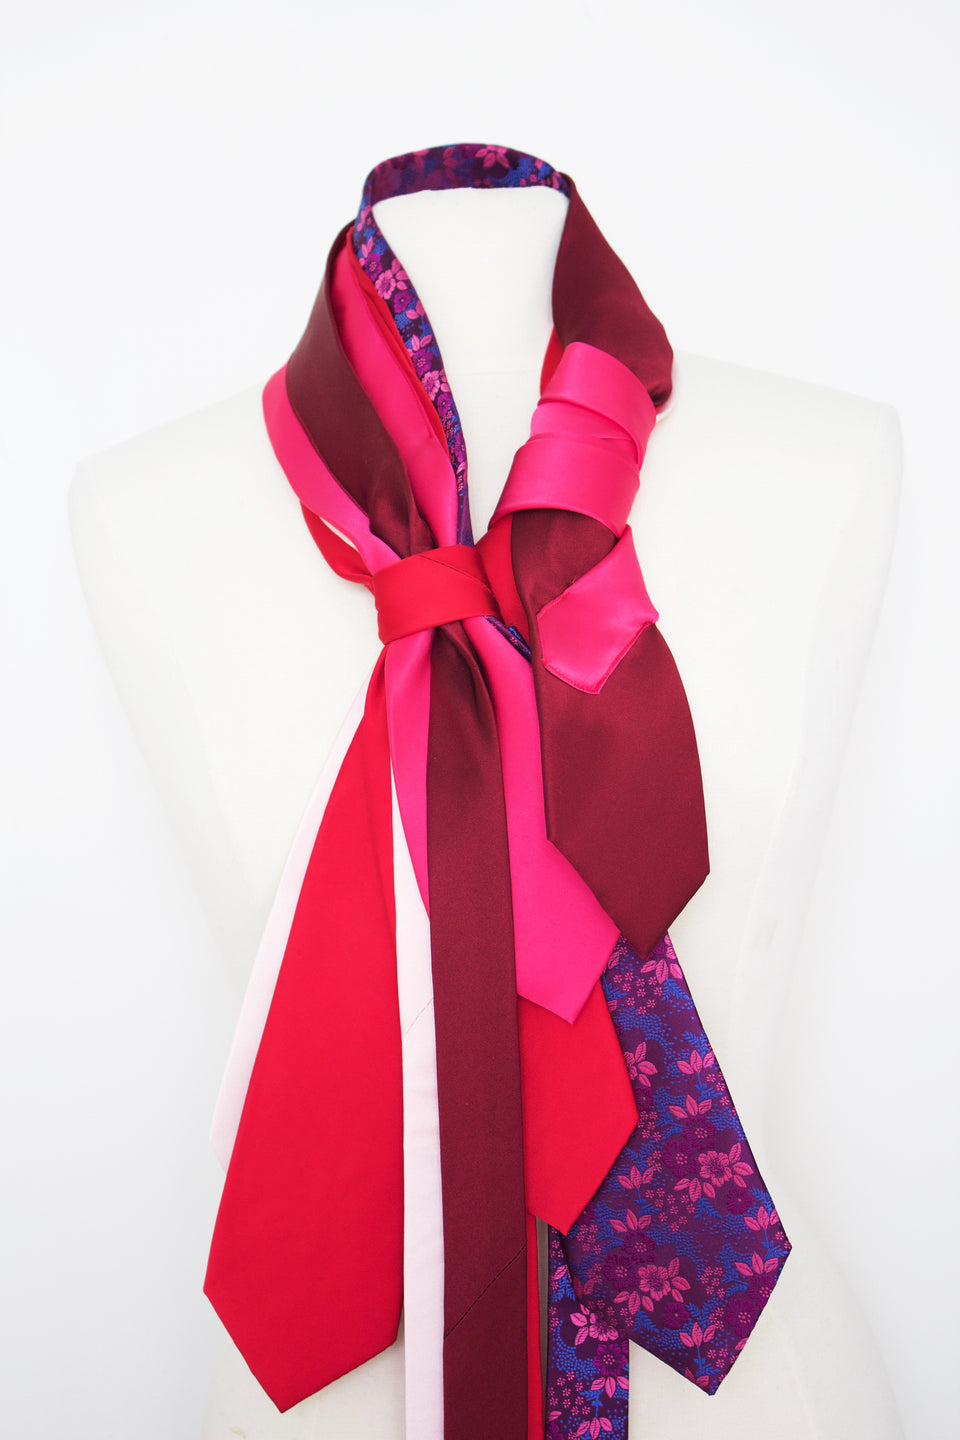 Waterfall Satin - Red and Pink